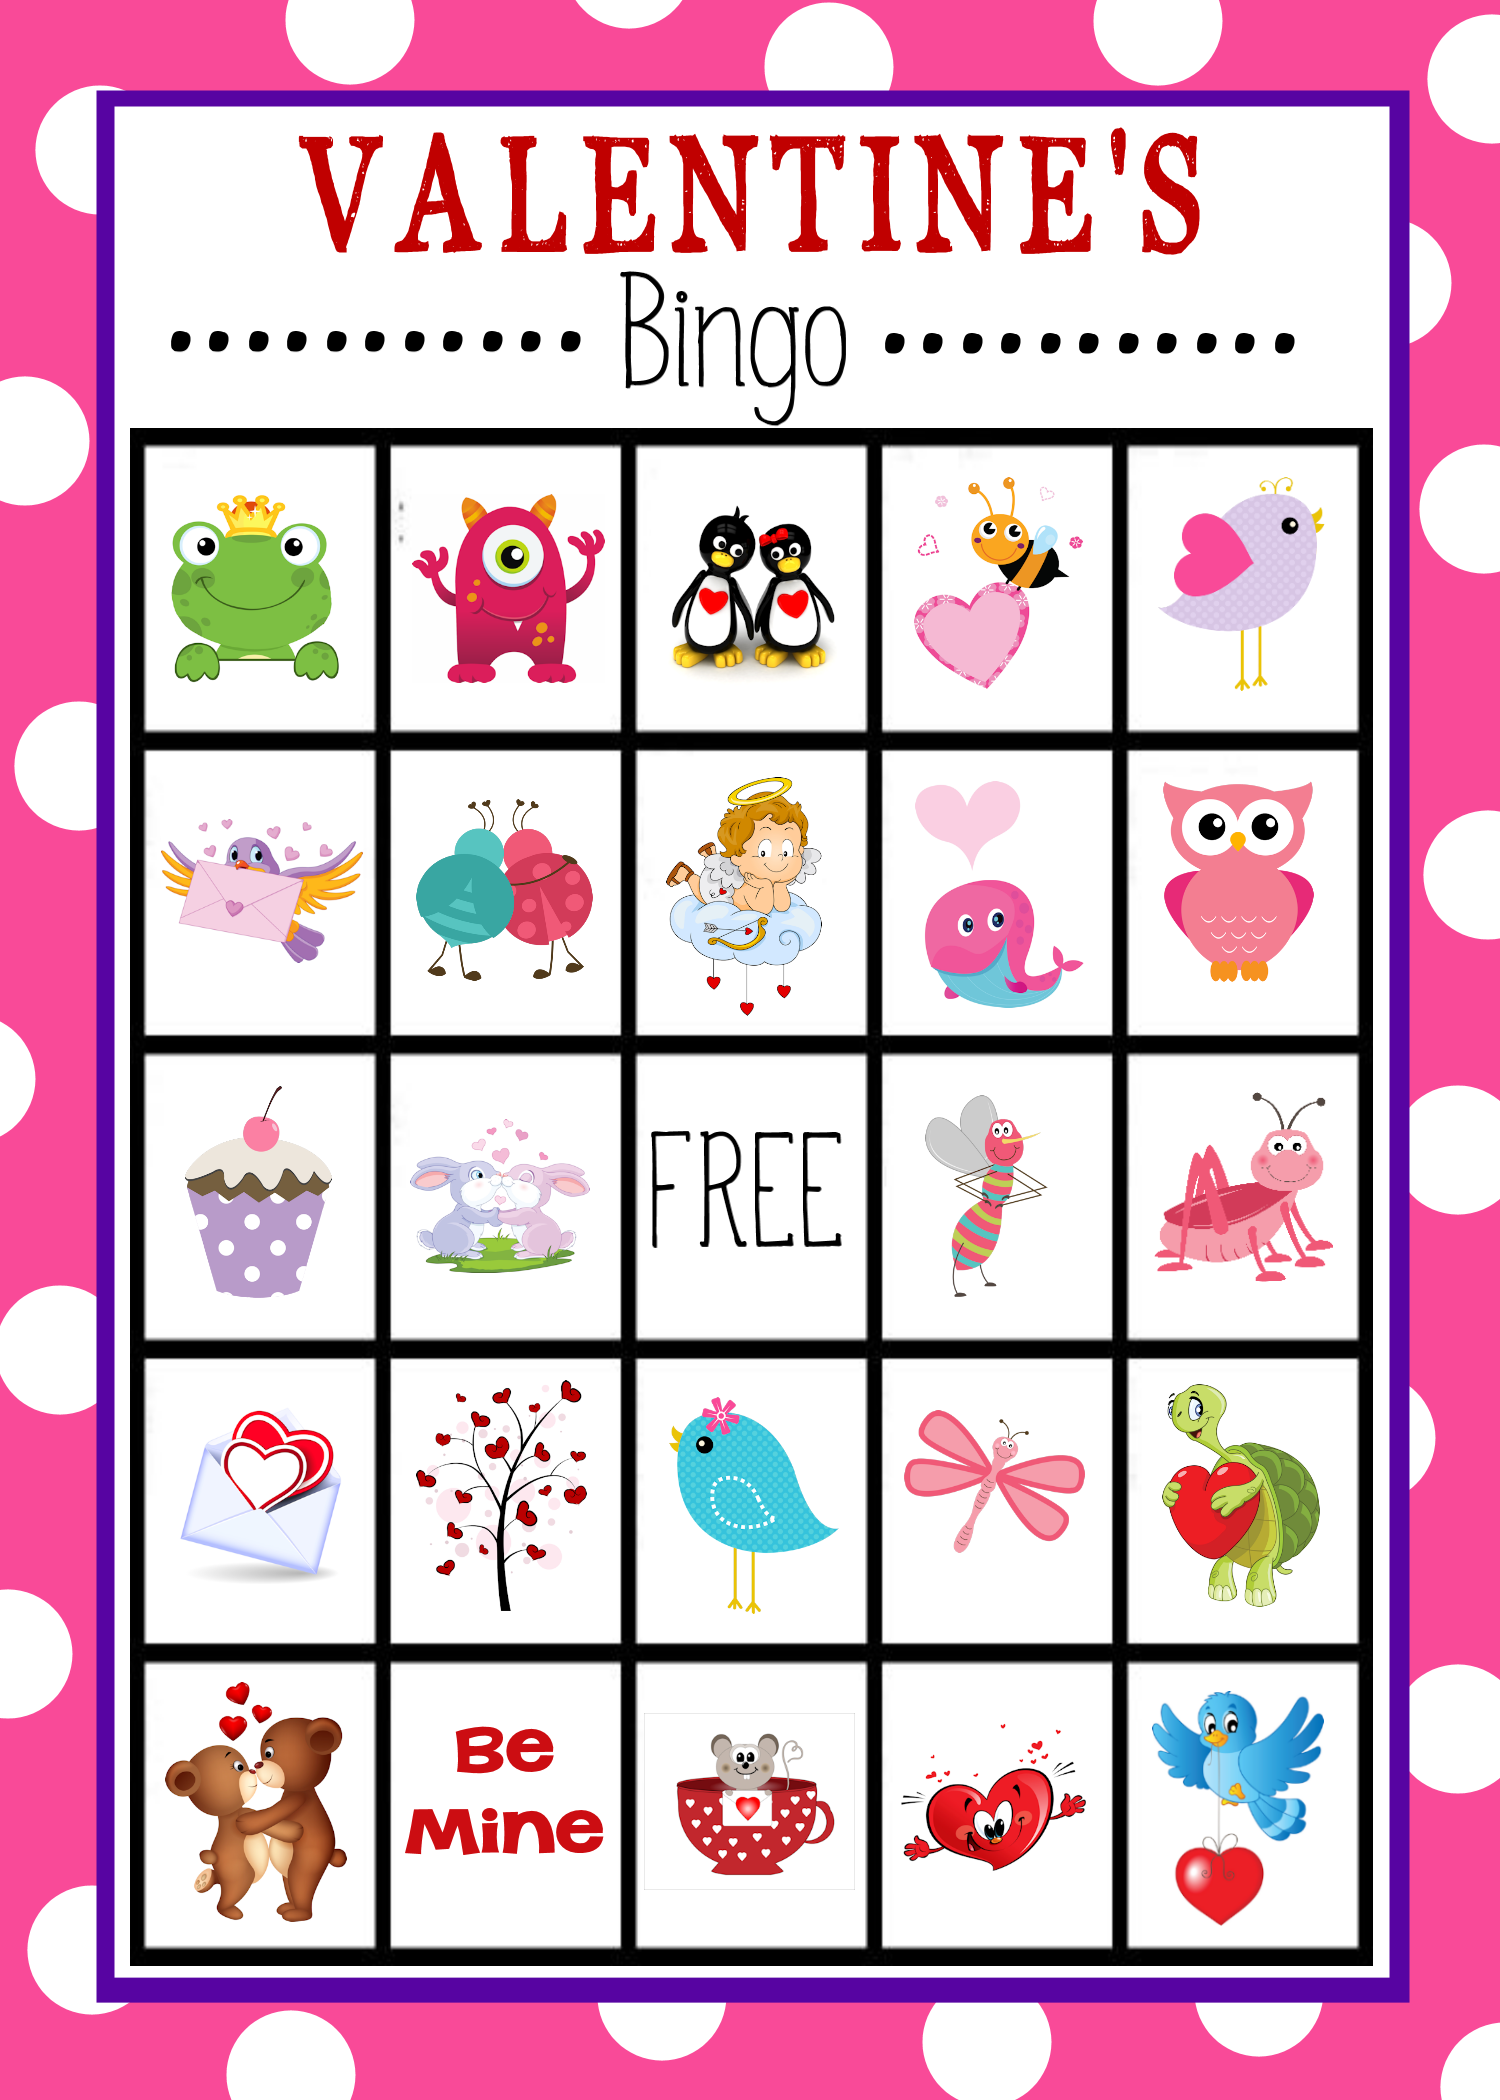 valentines day bingo cards - Valentines Day Game